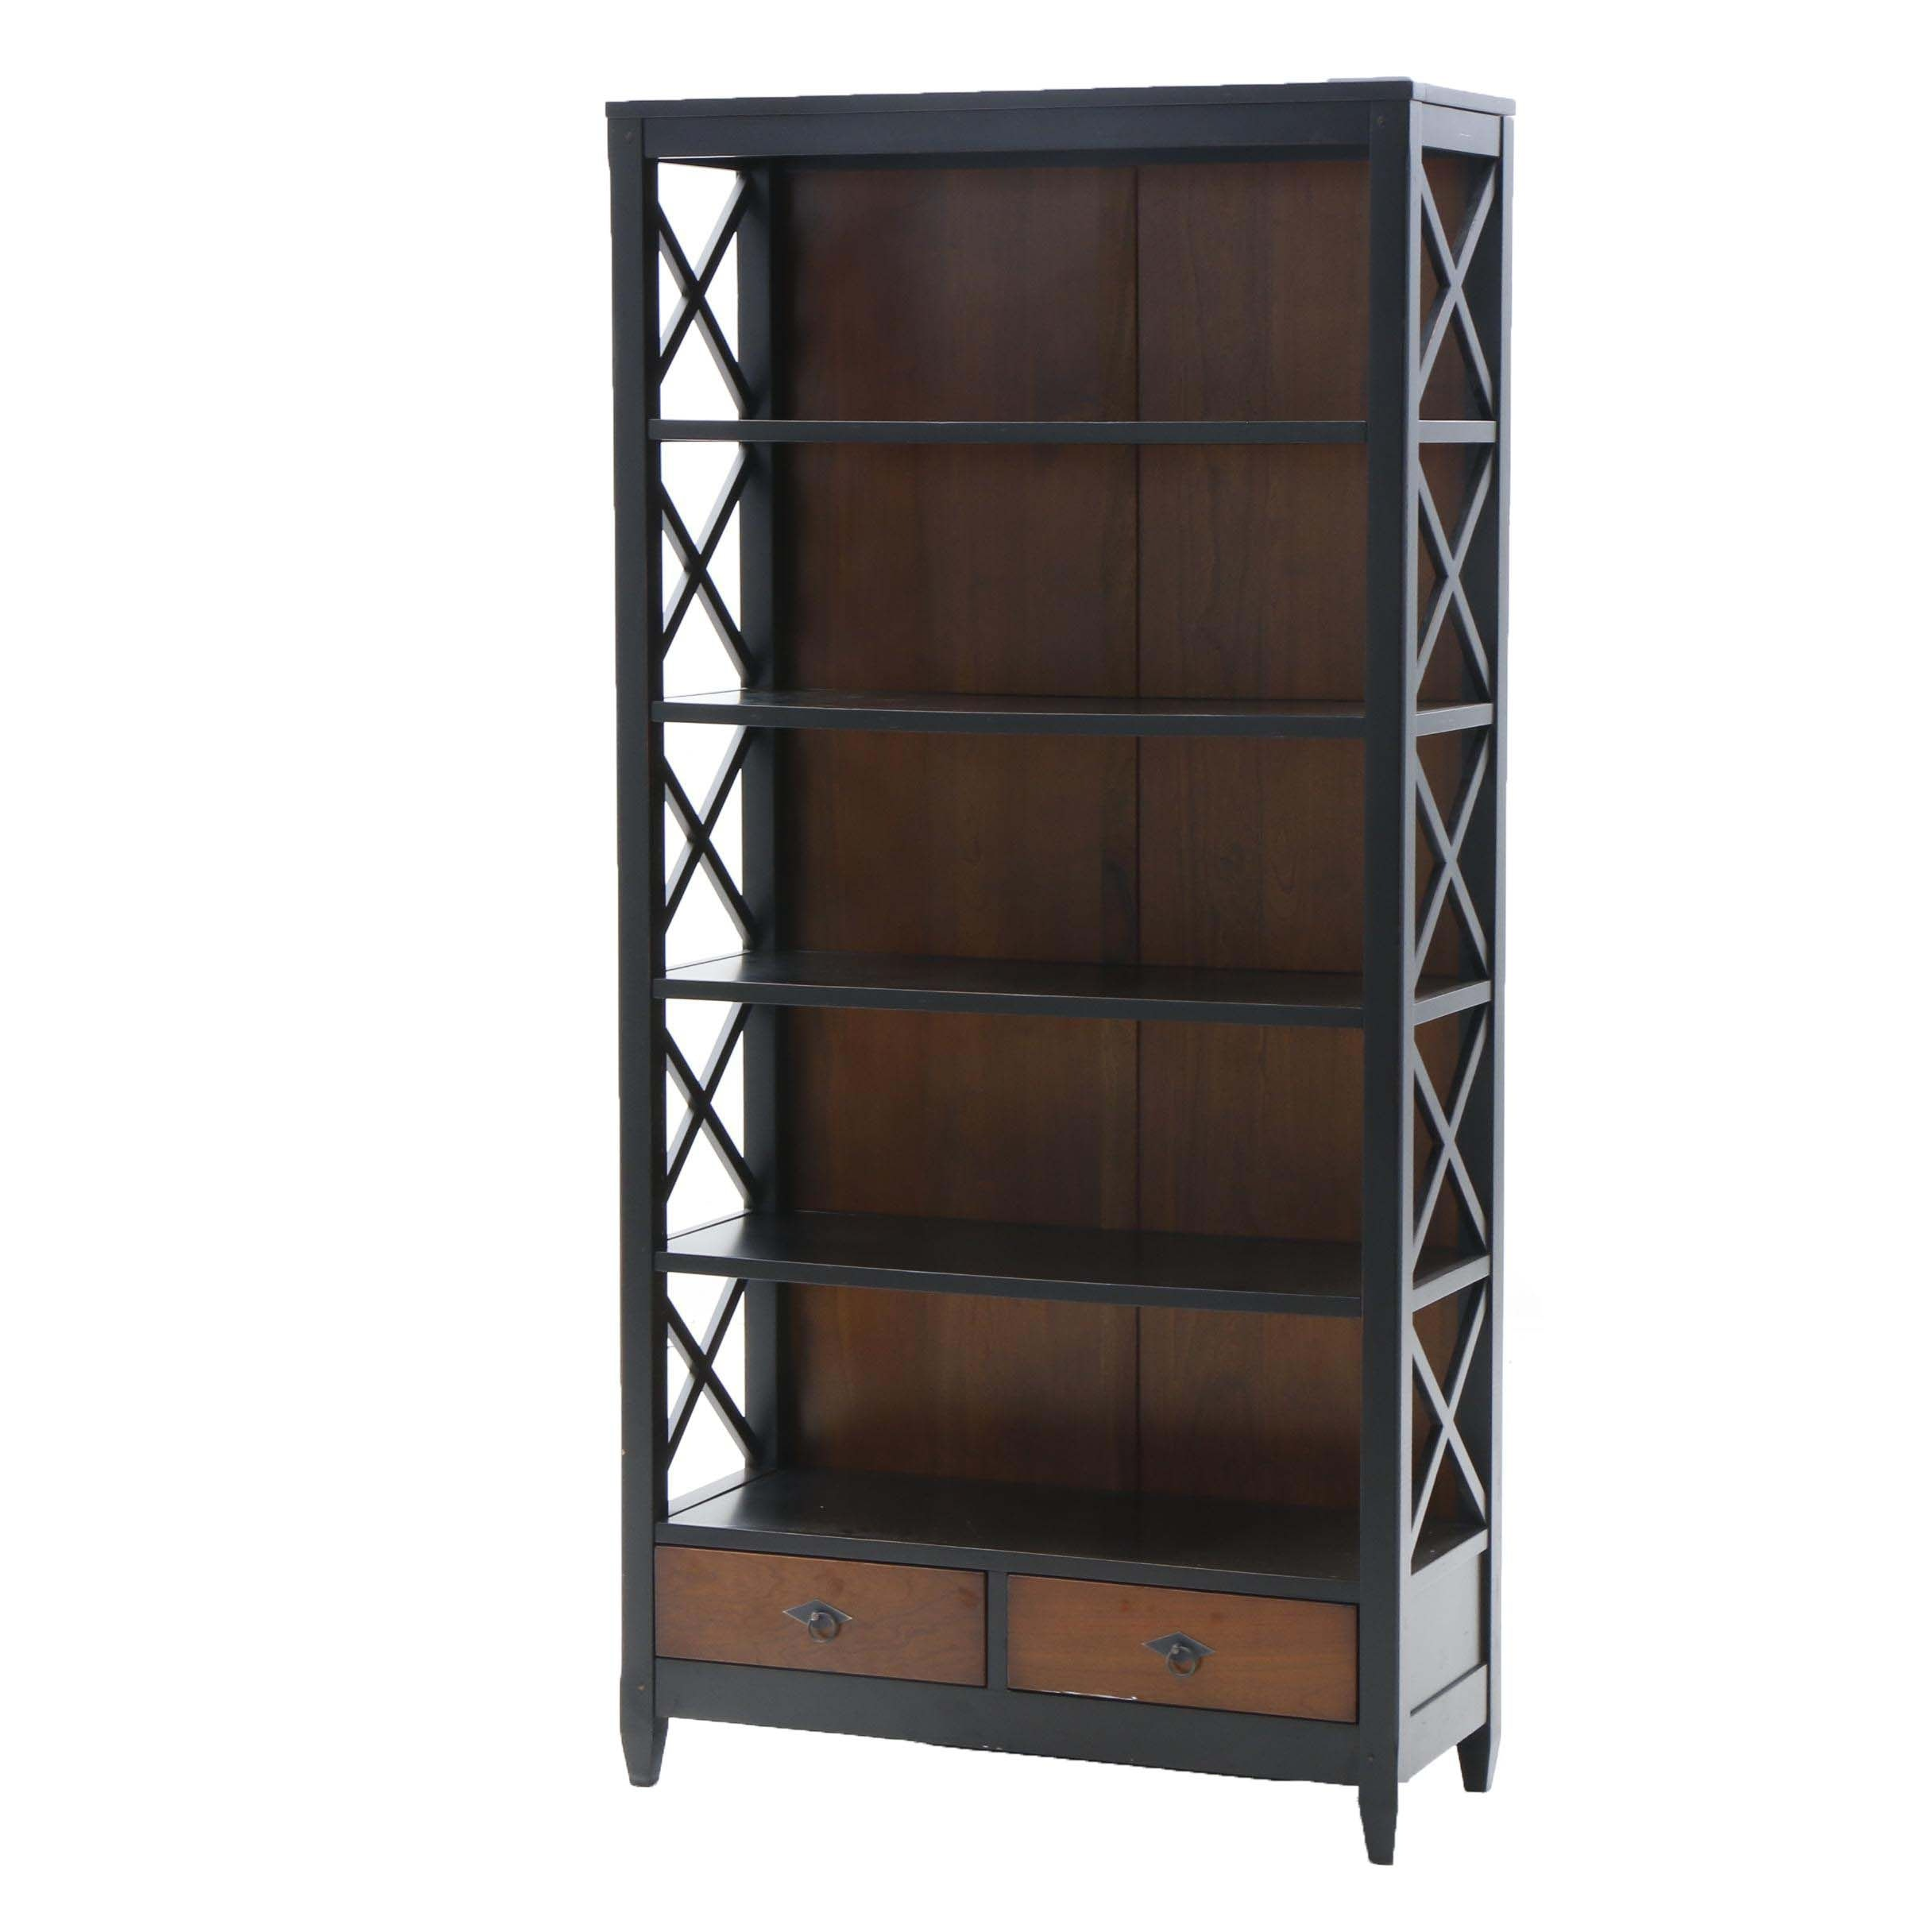 Contemporary Painted Wood Bookcase with Lattice Sides by Arhaus